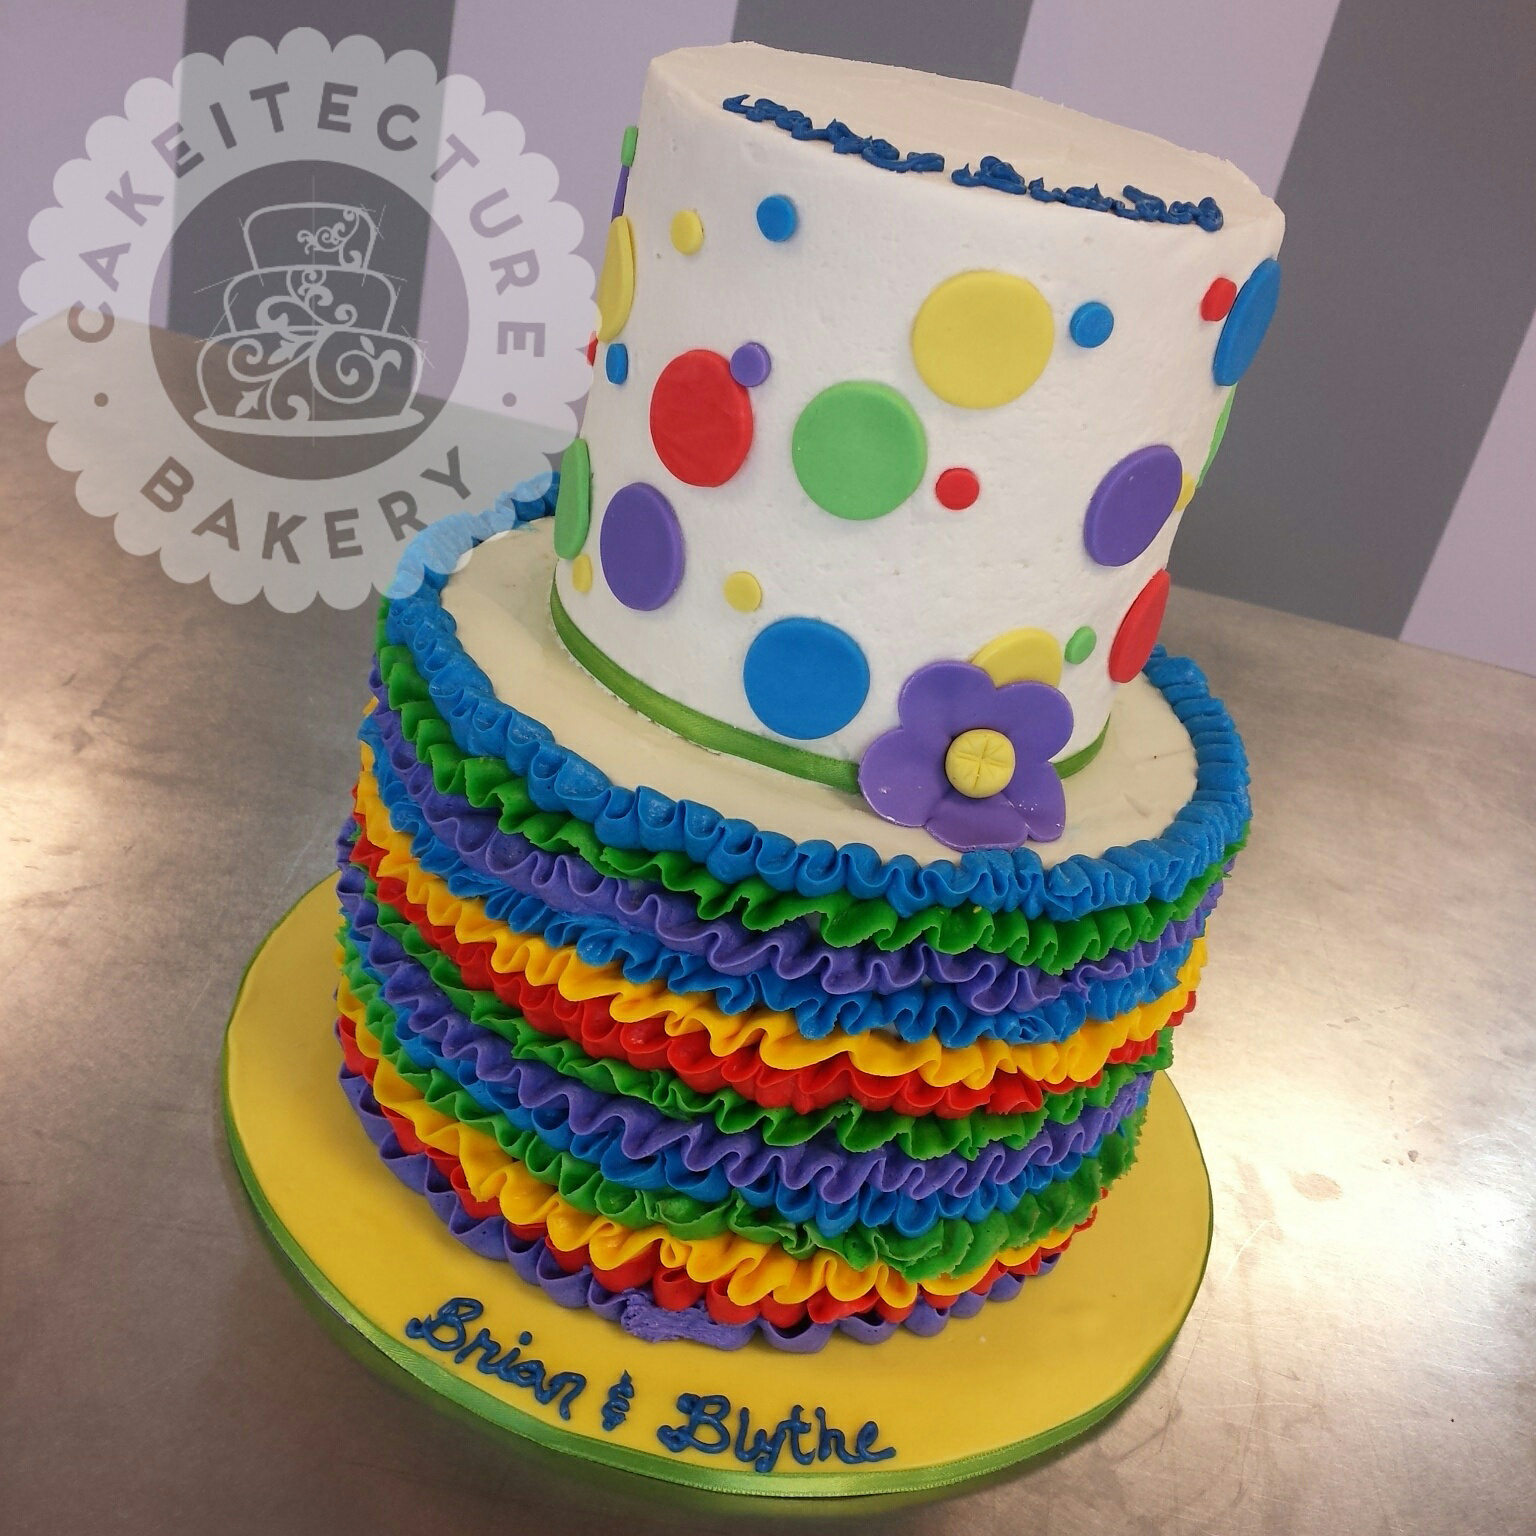 Cakeitecture Bakery stacked2.jpg